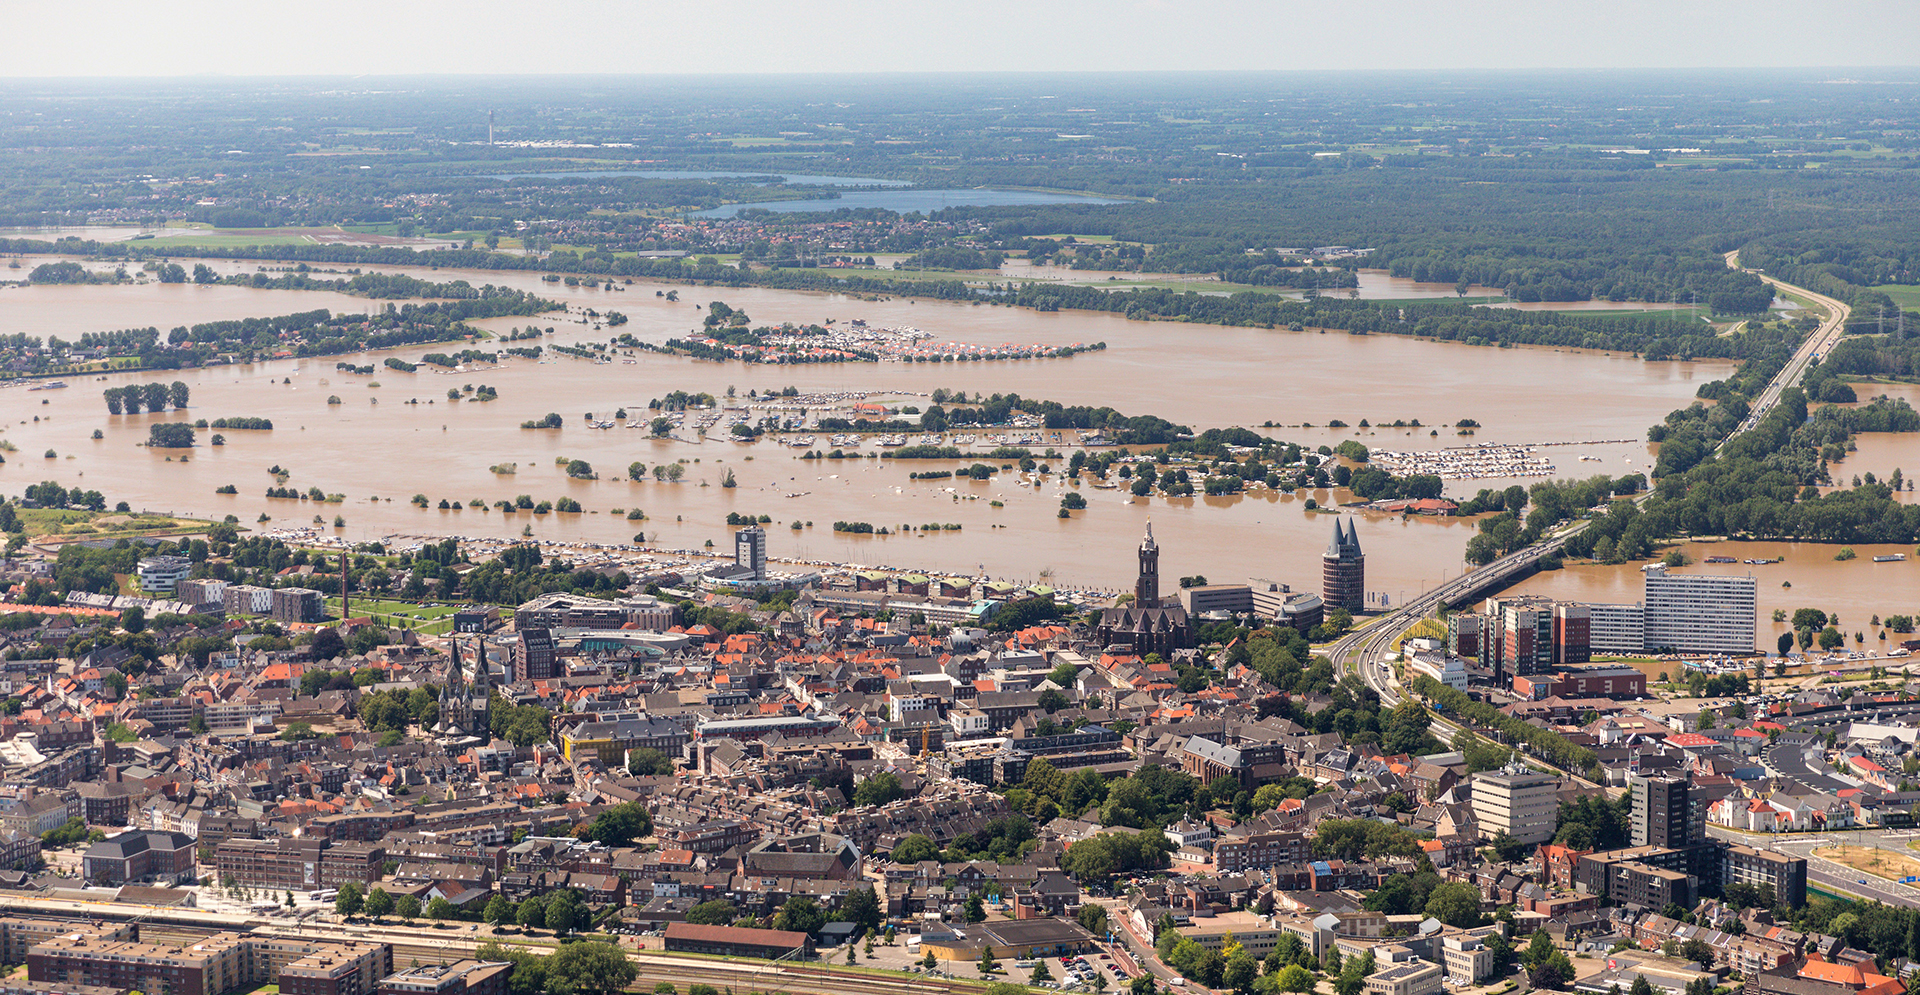 Europe's unexpected summer flooding